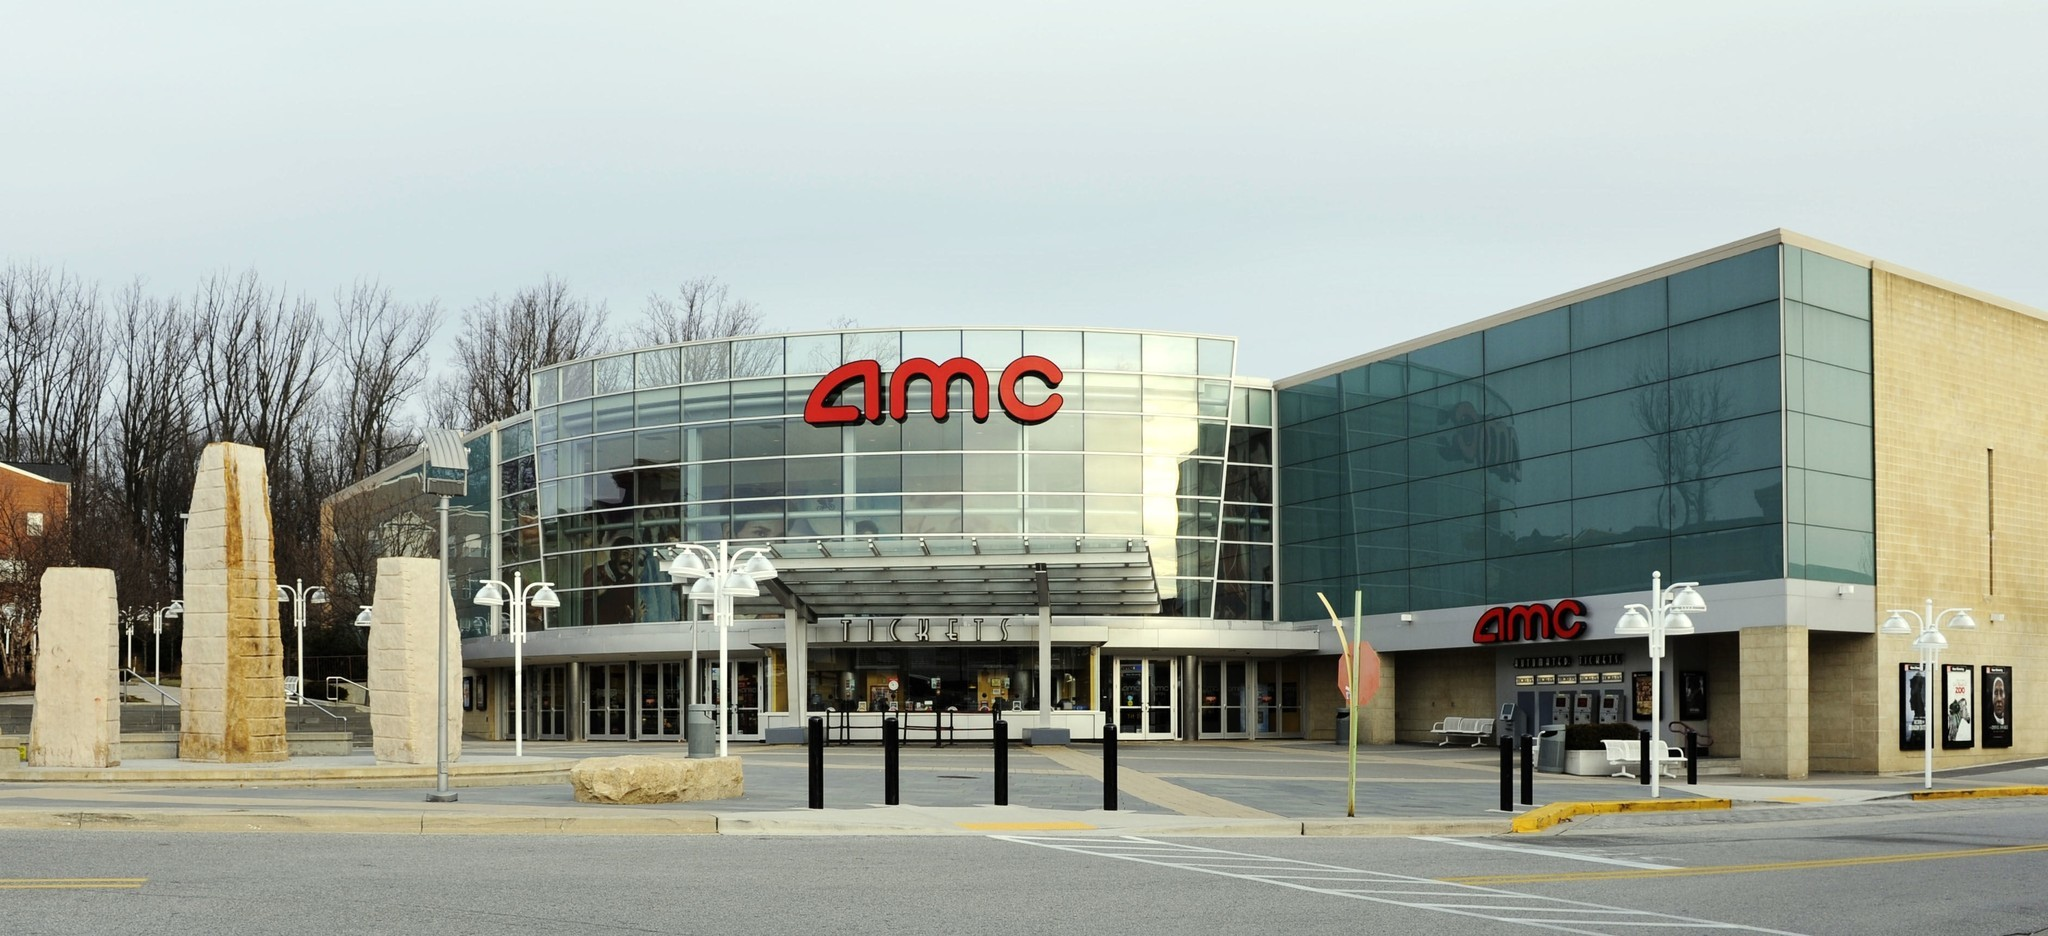 Amc Columbia Md Man Exposes Himself To Girls Near Amc Columbia Howard County Times